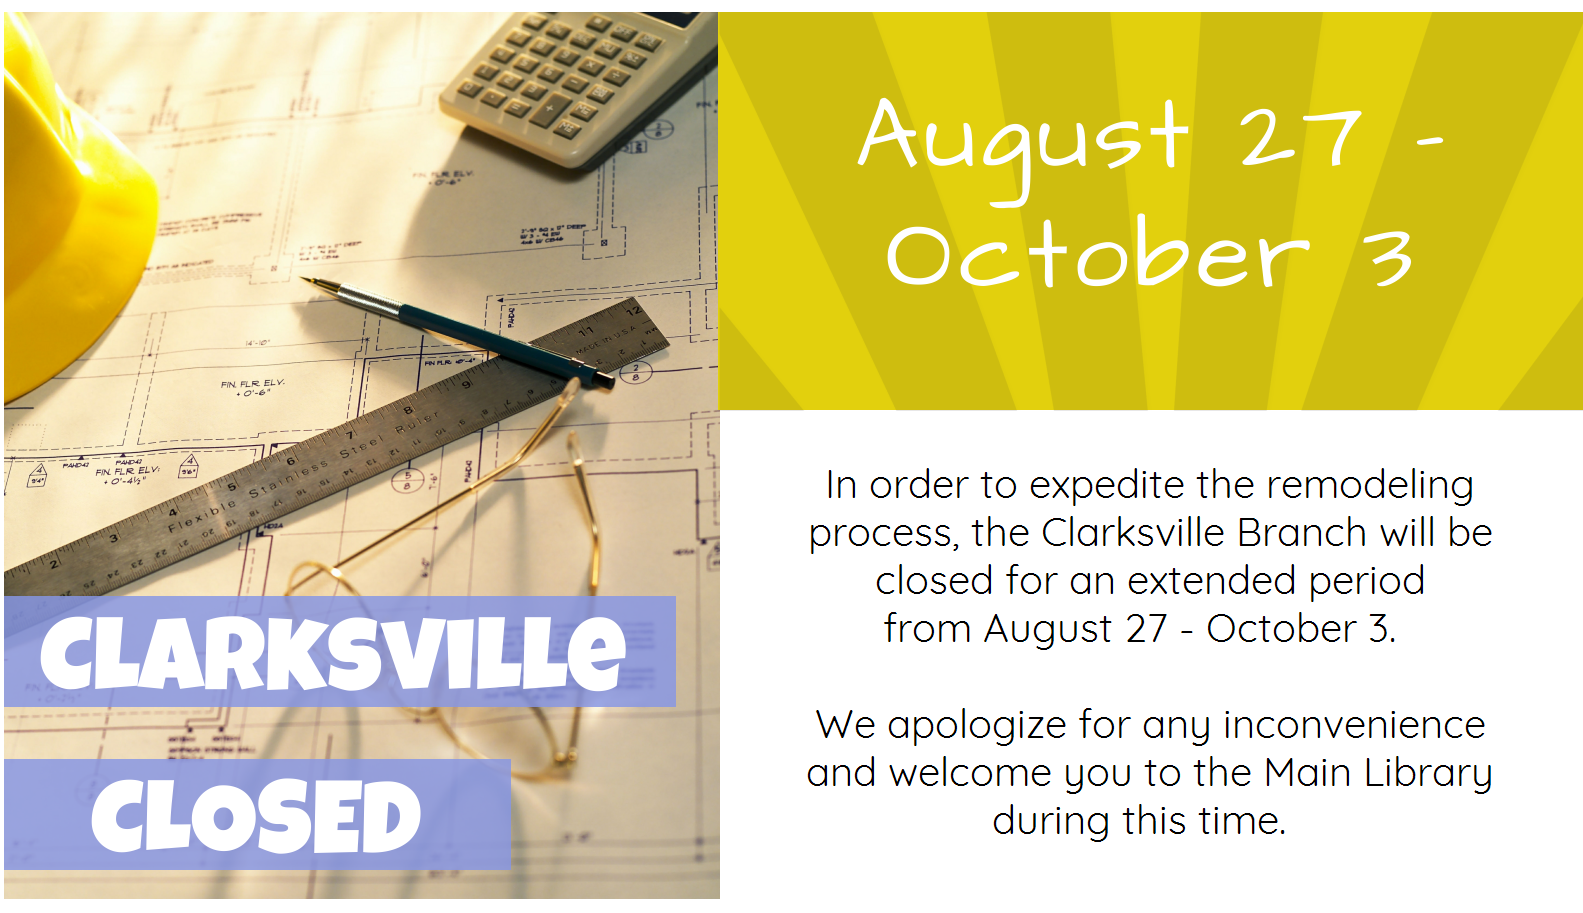 Clarksville Branch Closed August 27 – October 3